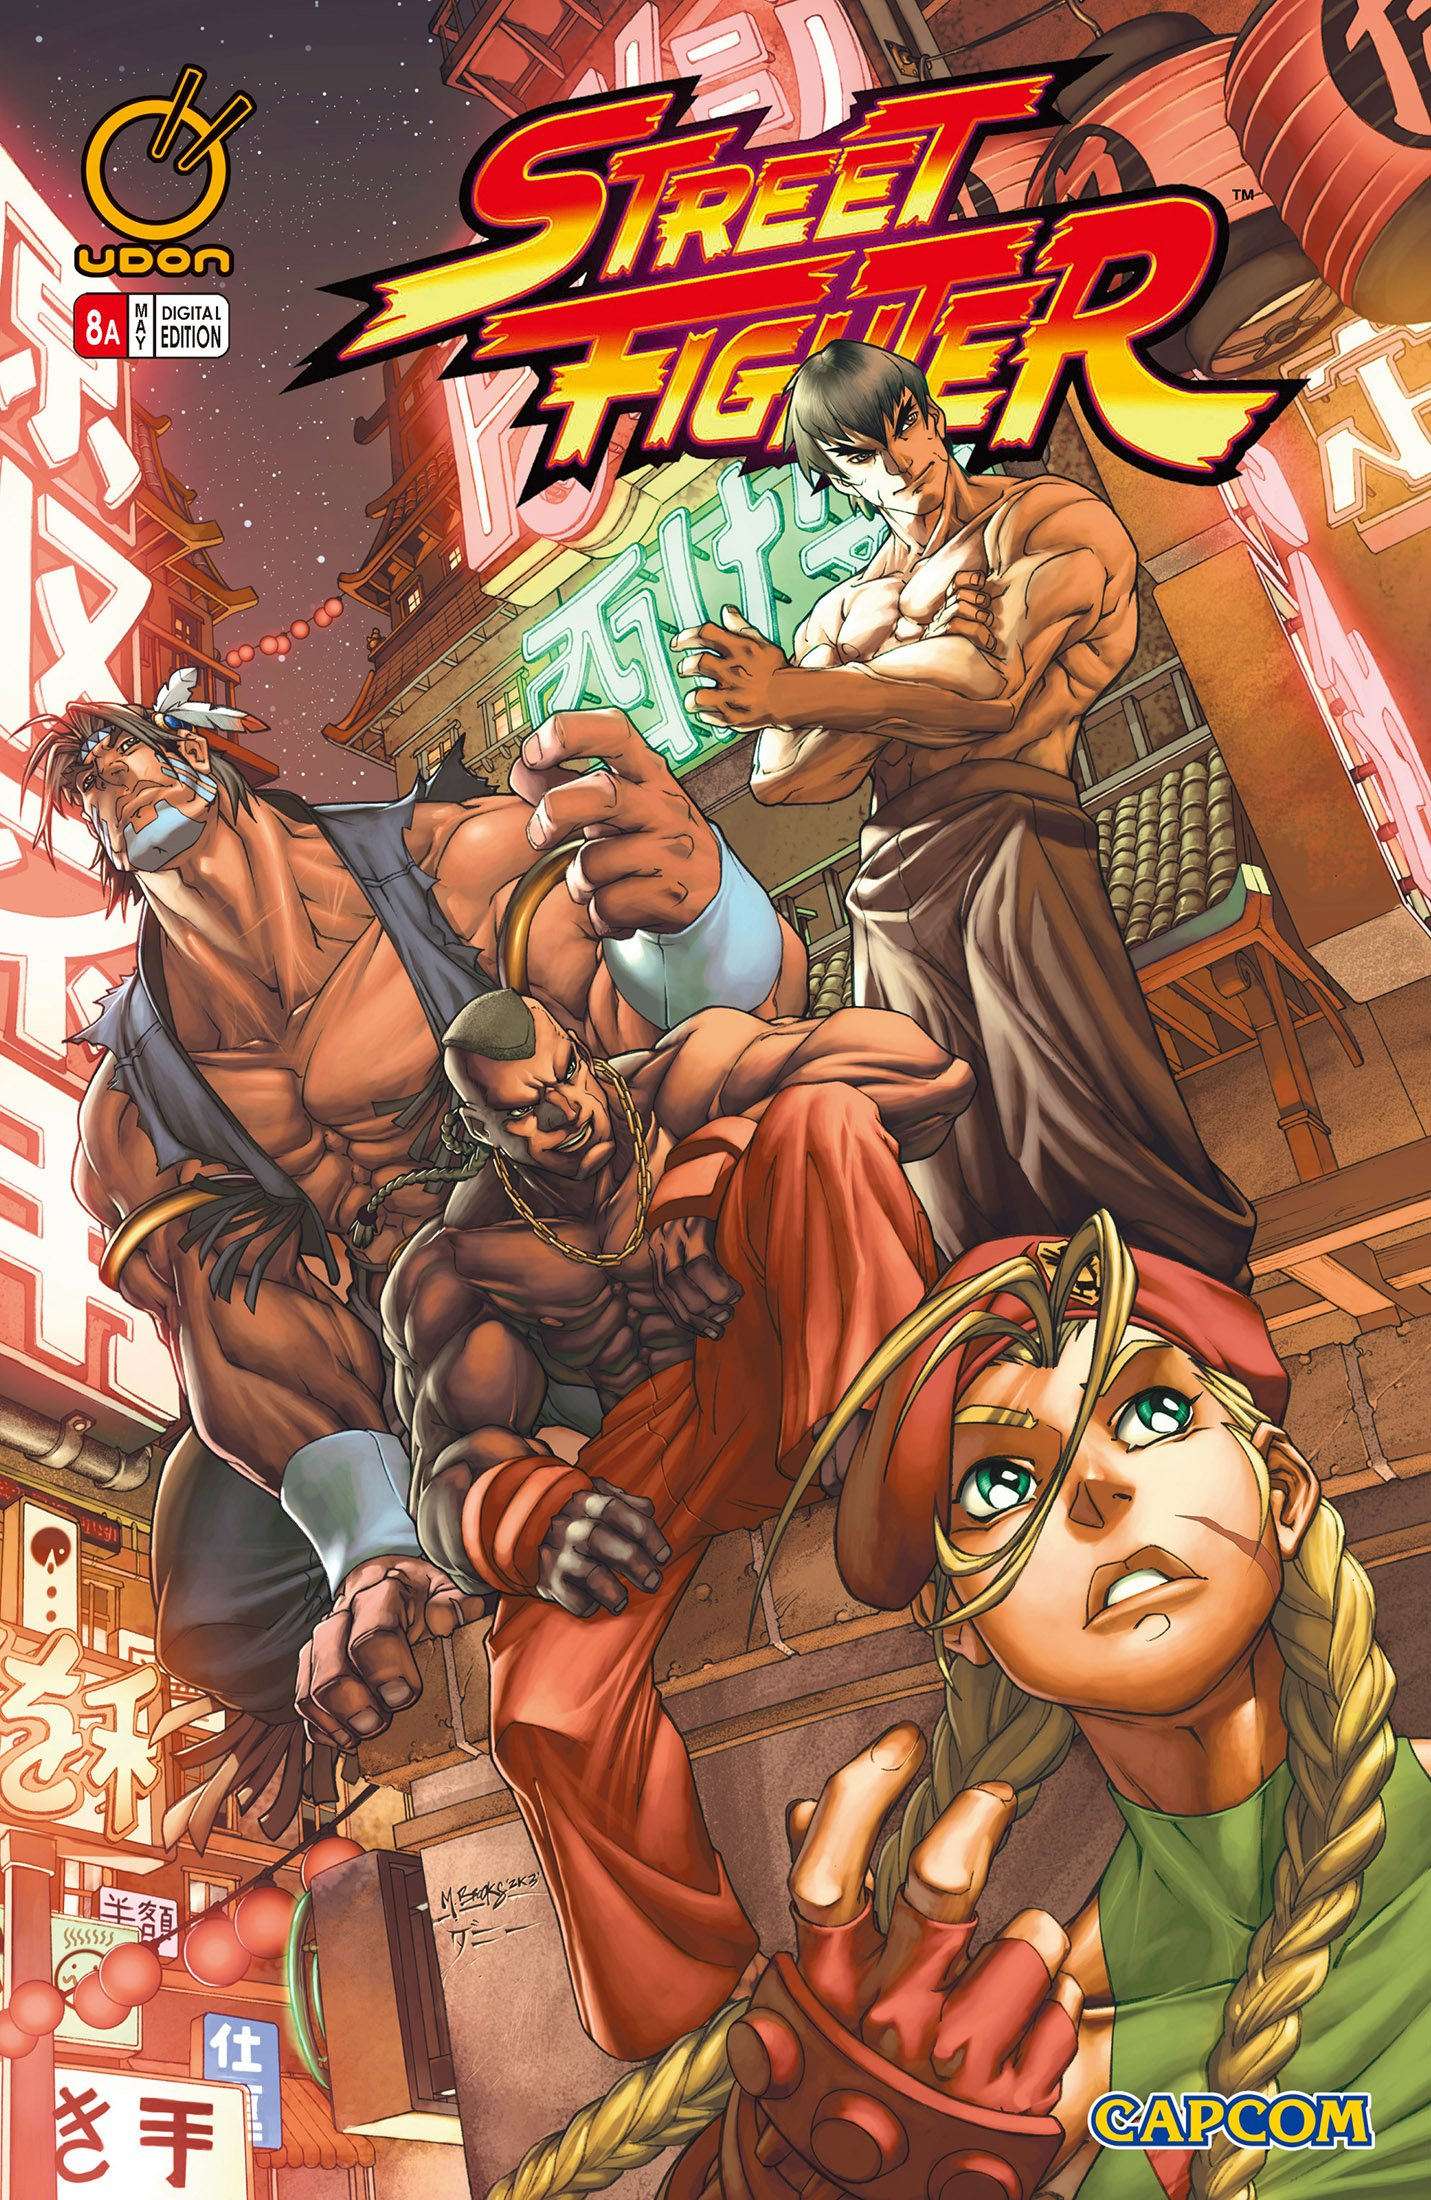 Street Fighter Vol.1 008 (May 2004) (cover a)